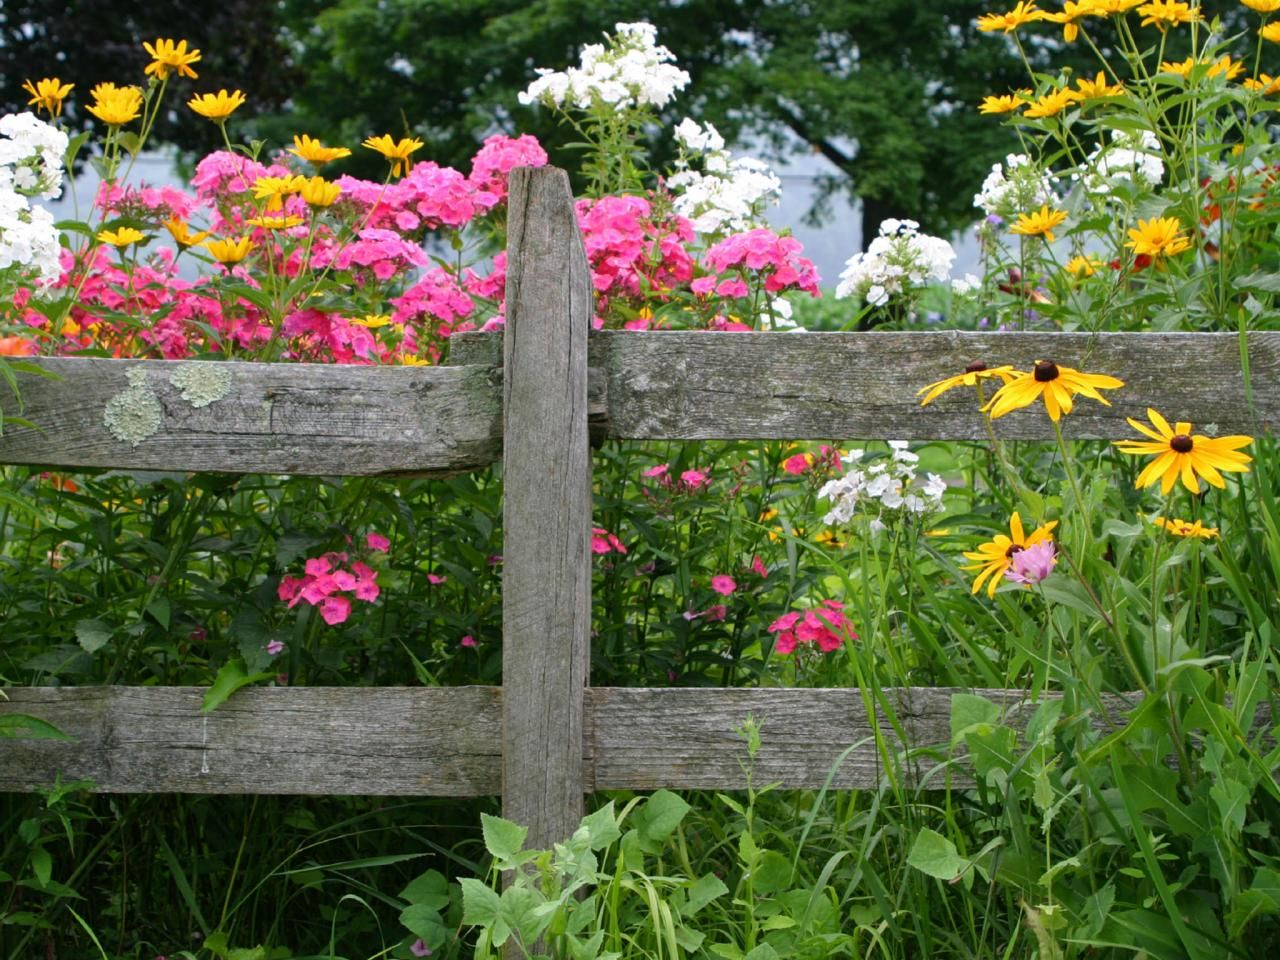 Trying To Decide What To Grow In Your Garden Or Yard? DIY Network Shares  Seven Popular Perennial Flowers To Consider Planting.